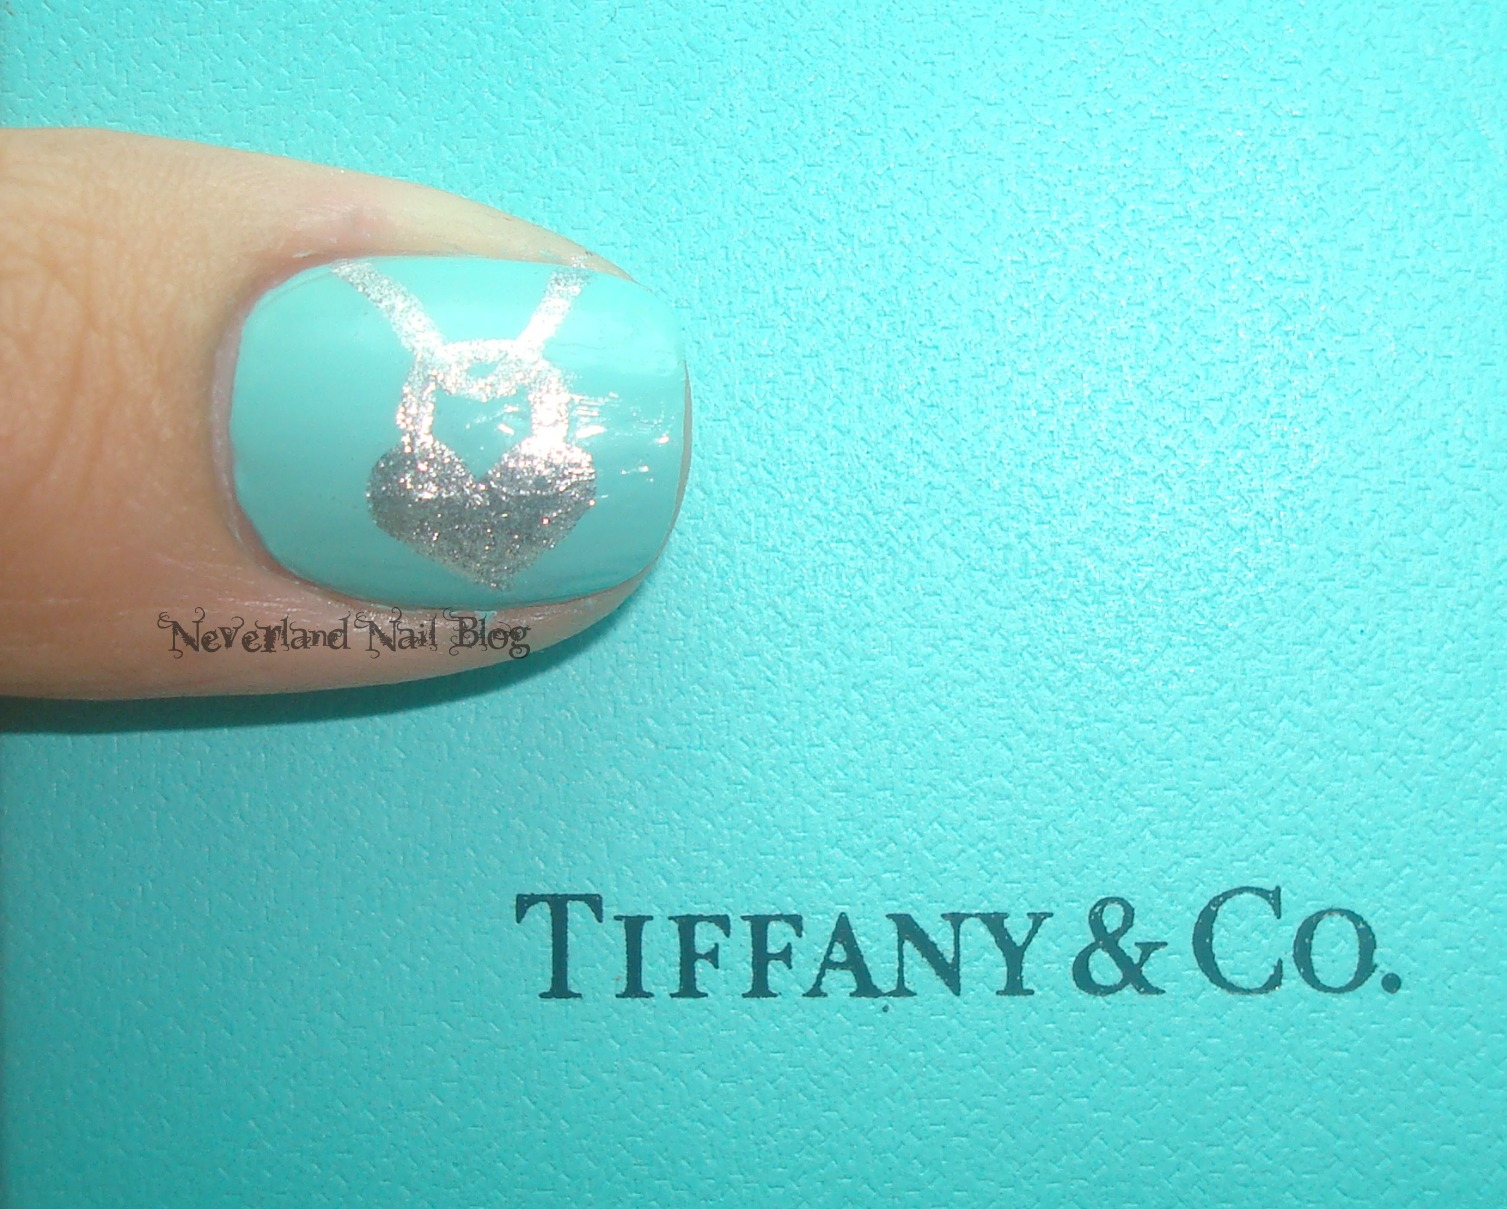 Tiffany And Co Wallpaper Now all i need is some tiffany 1507x1209